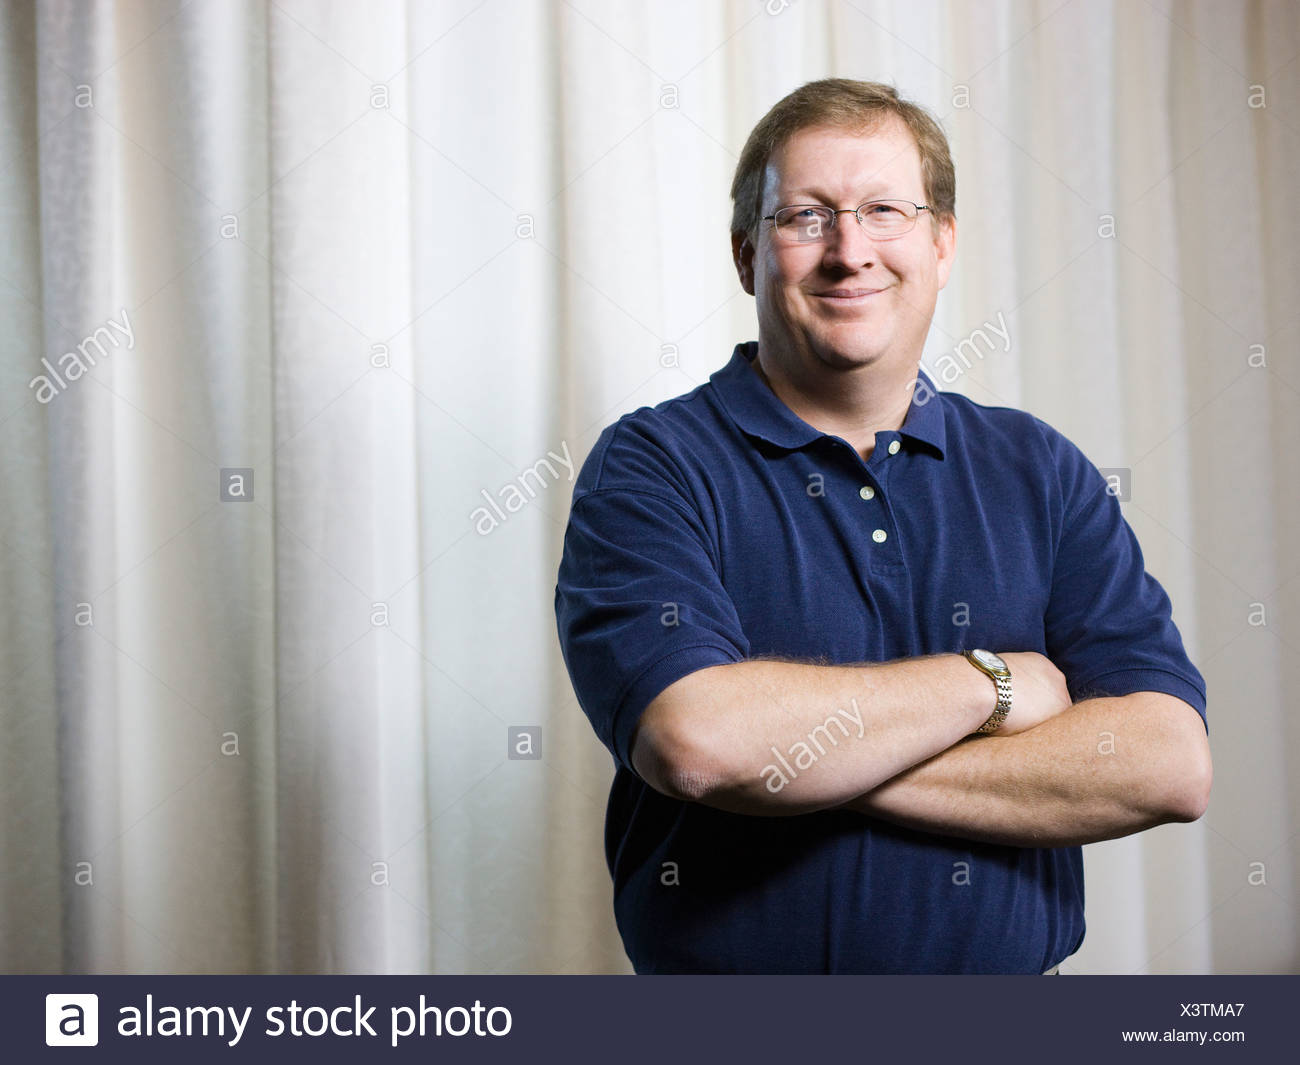 physical therapist standing with arms folded - Stock Image